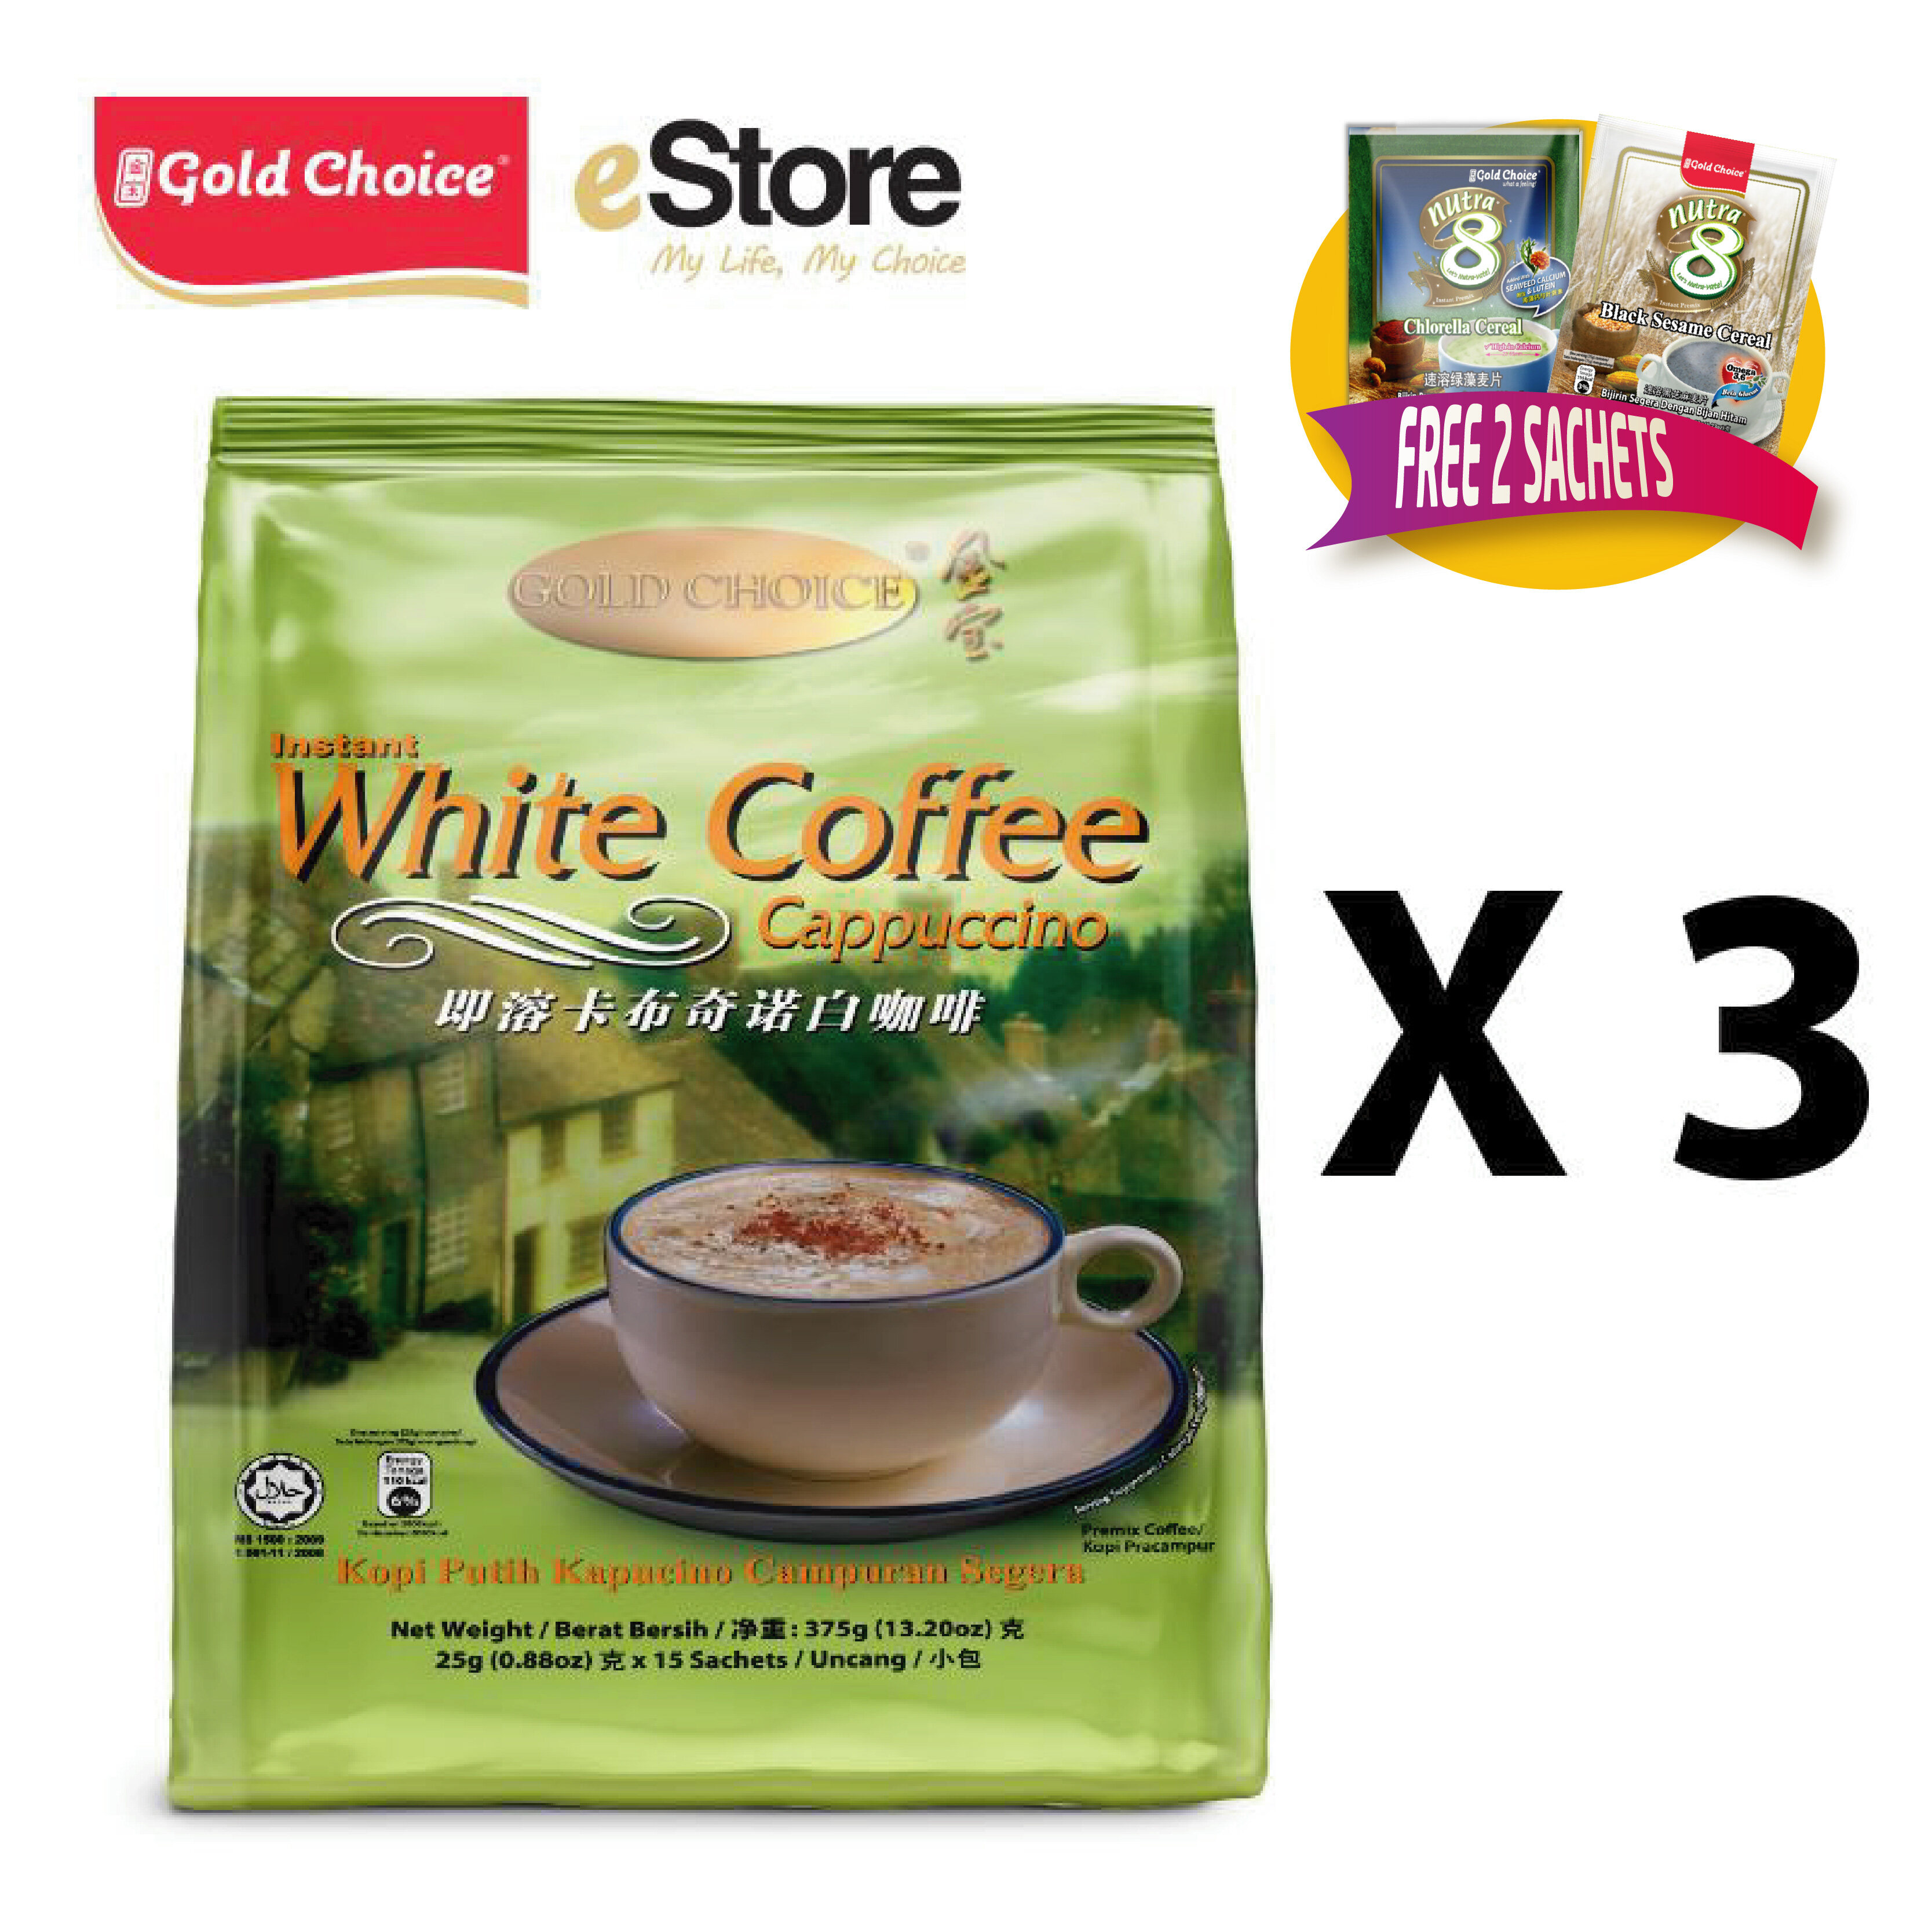 GOLD CHOICE Instant White Coffee (CAPPUCCINO) - (25g X 15'S) X 3 Packs In Bundle [2 FREE SACHETS PER PACK]